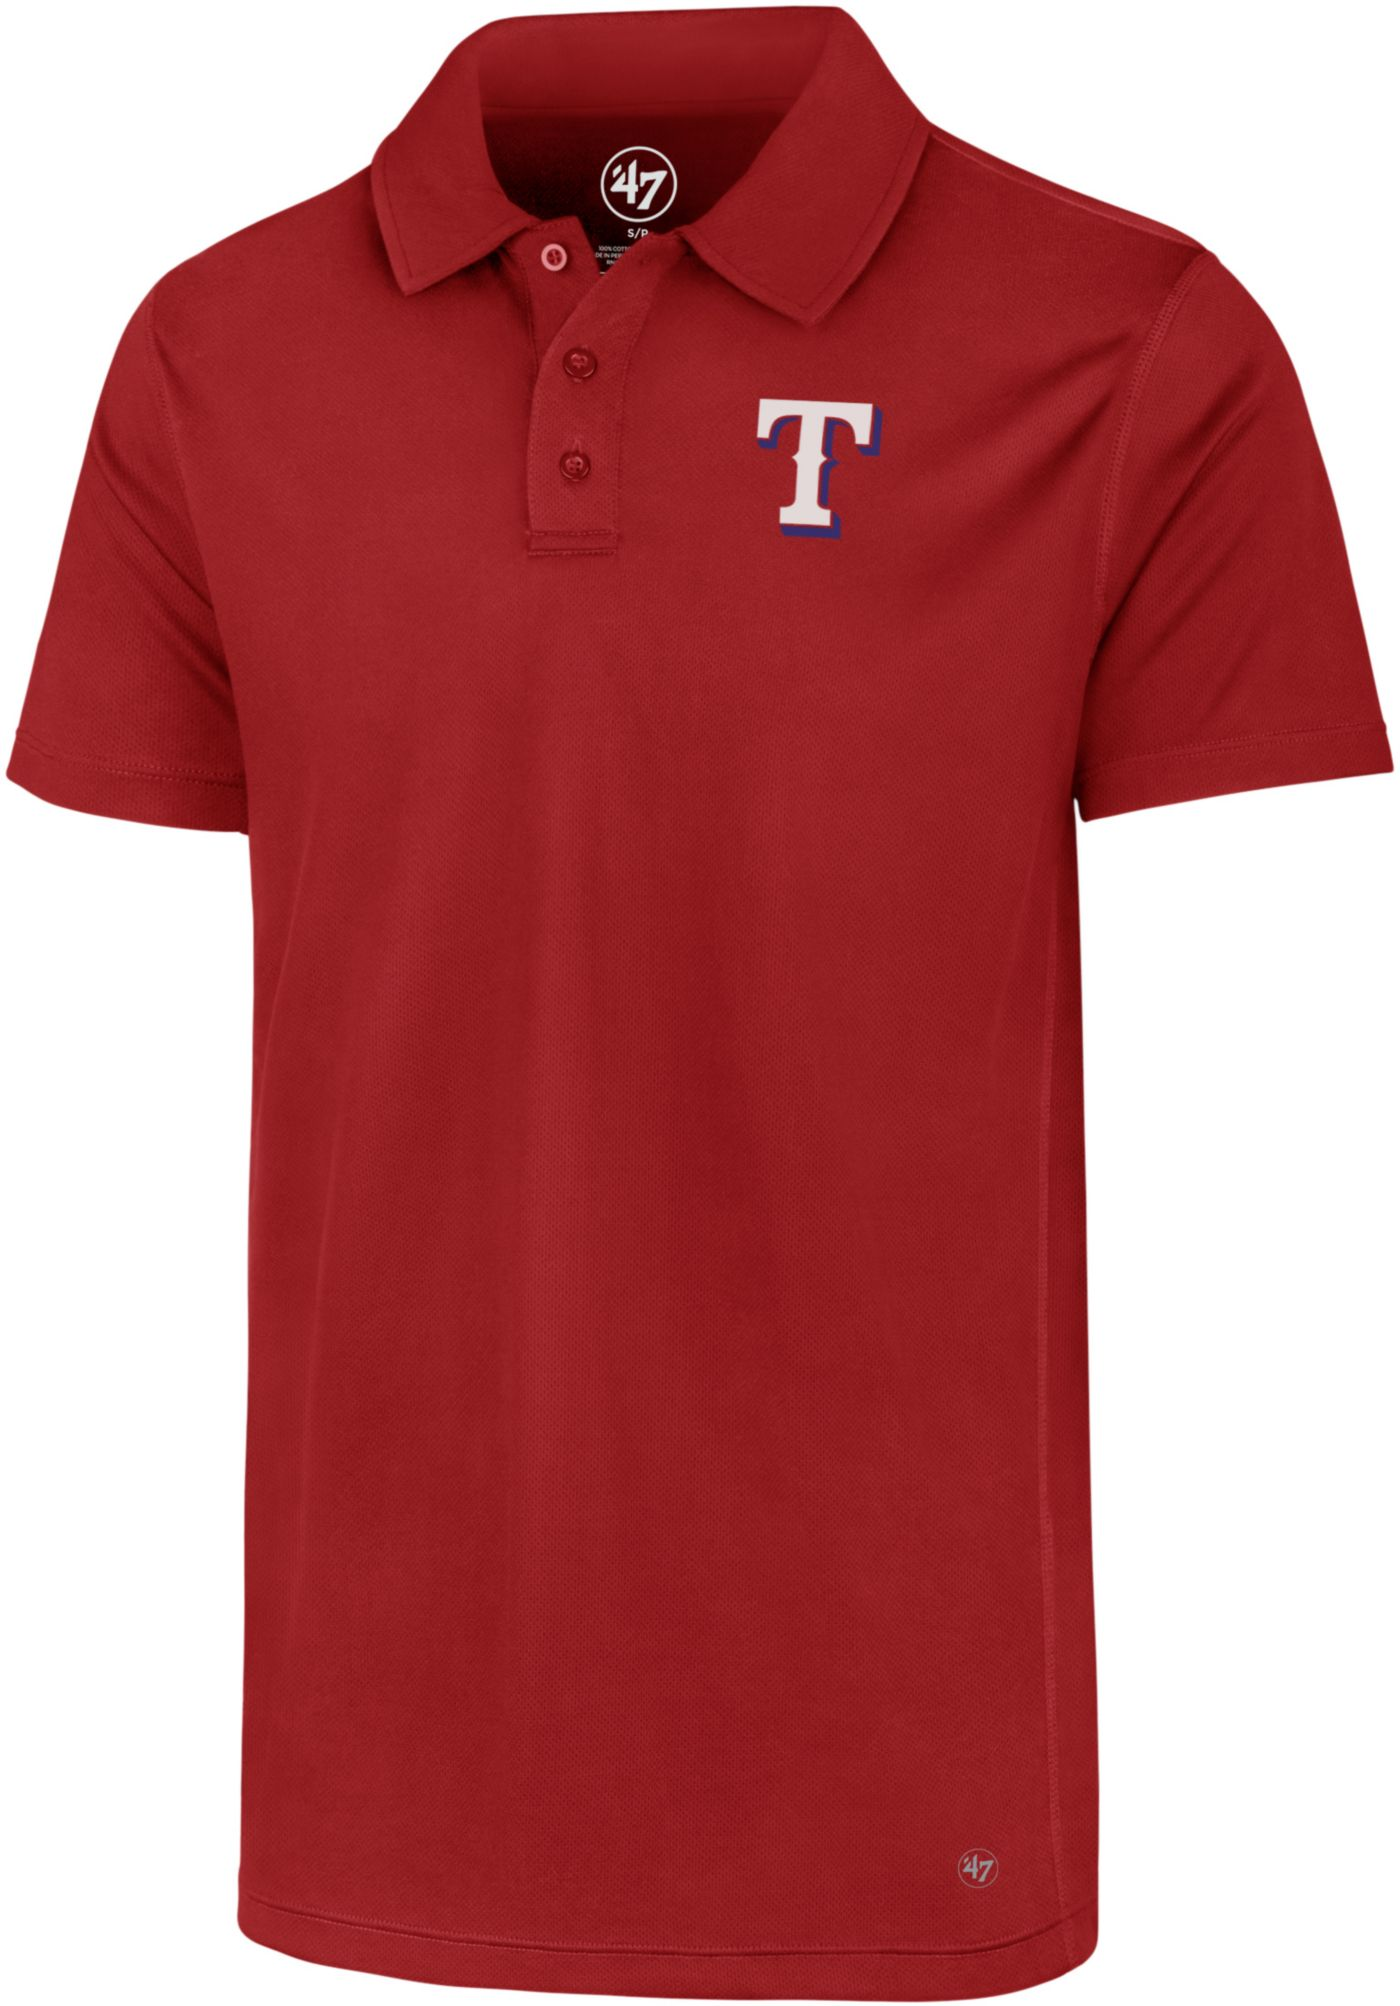 '47 Men's Texas Rangers Ace Performance Polo